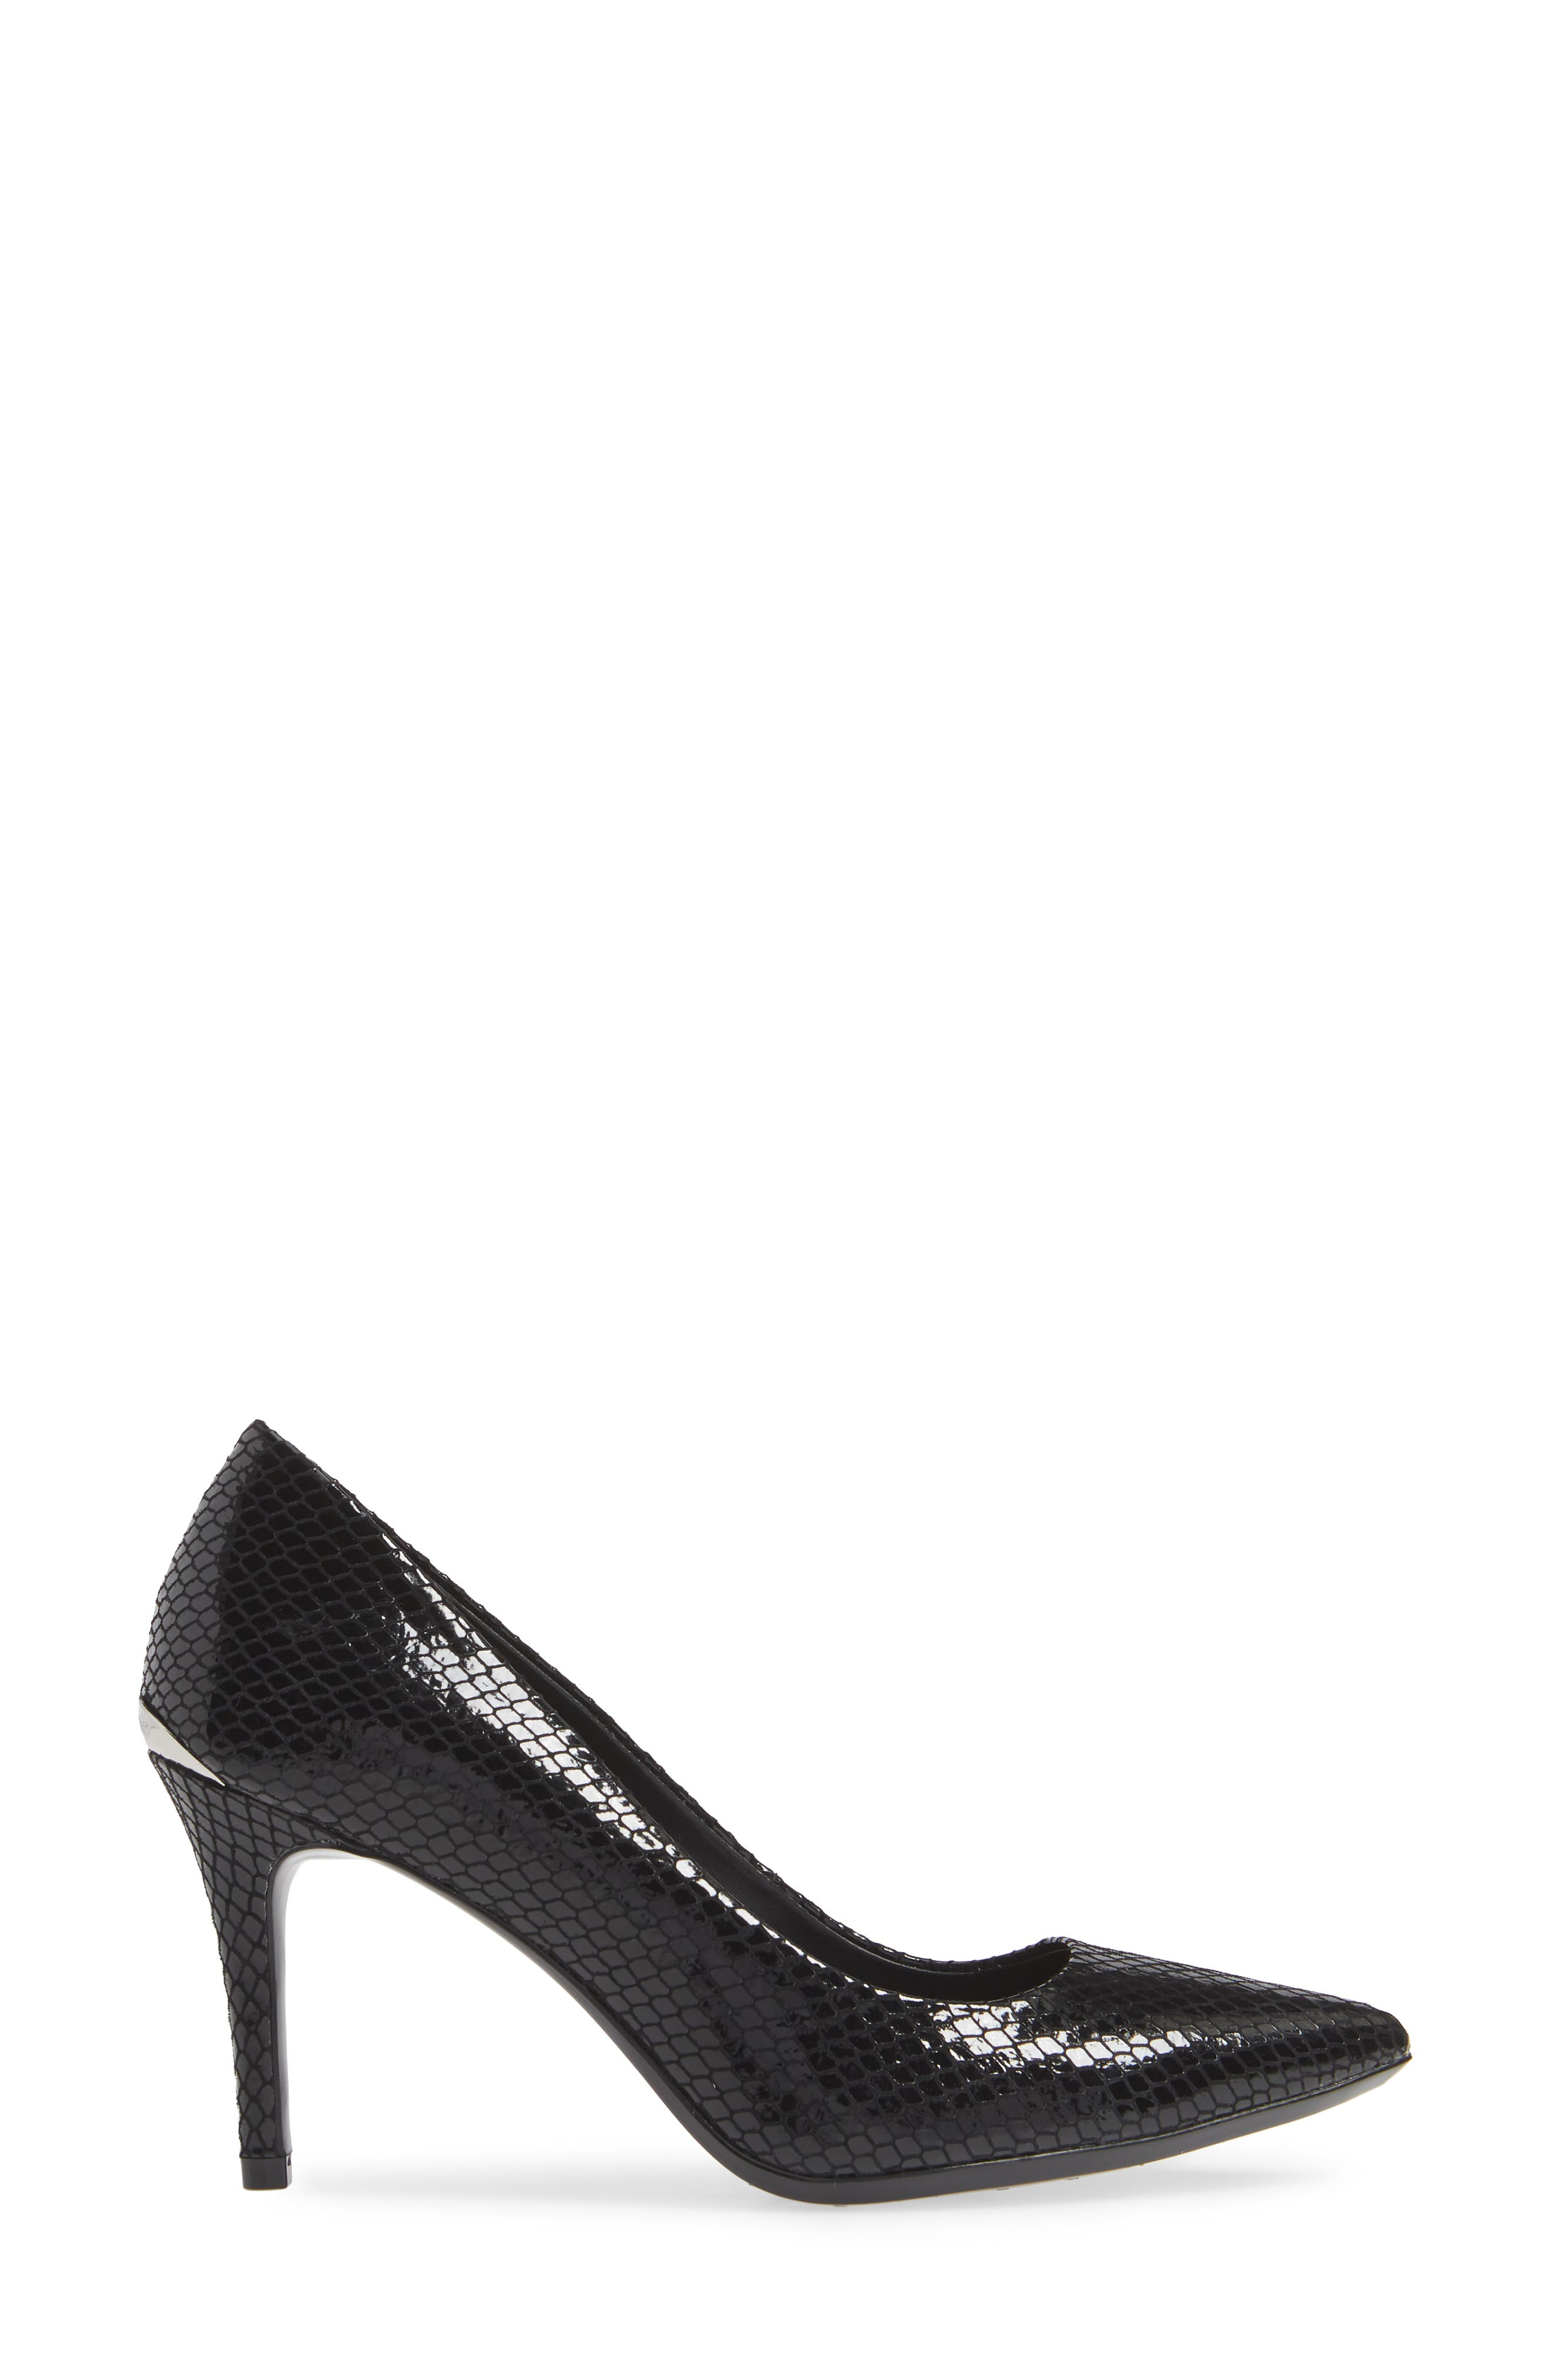 CALVIN KLEIN,                             'Gayle' Pointy Toe Pump,                             Alternate thumbnail 3, color,                             BLACK SNAKE PRINT LEATHER